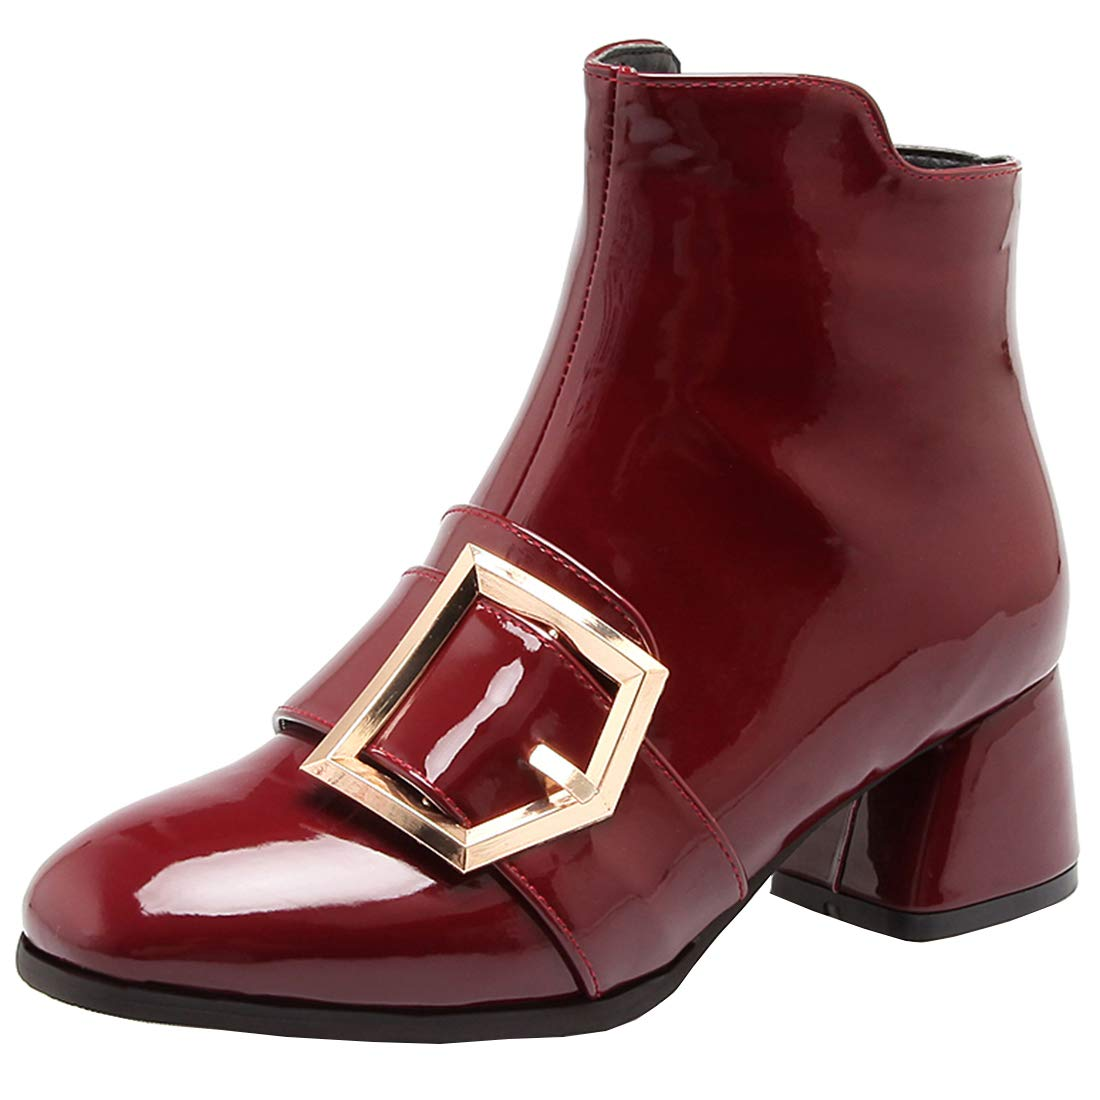 YE Boucles Bottes Vernies Femme Zip Courtes Chaude Mi-Talon Bloc Chunky Ankle Boots Bottines Boucles Chunky Heels Chaussures Zip Hiver Winter Shoes Vin Rouge adab51a - latesttechnology.space